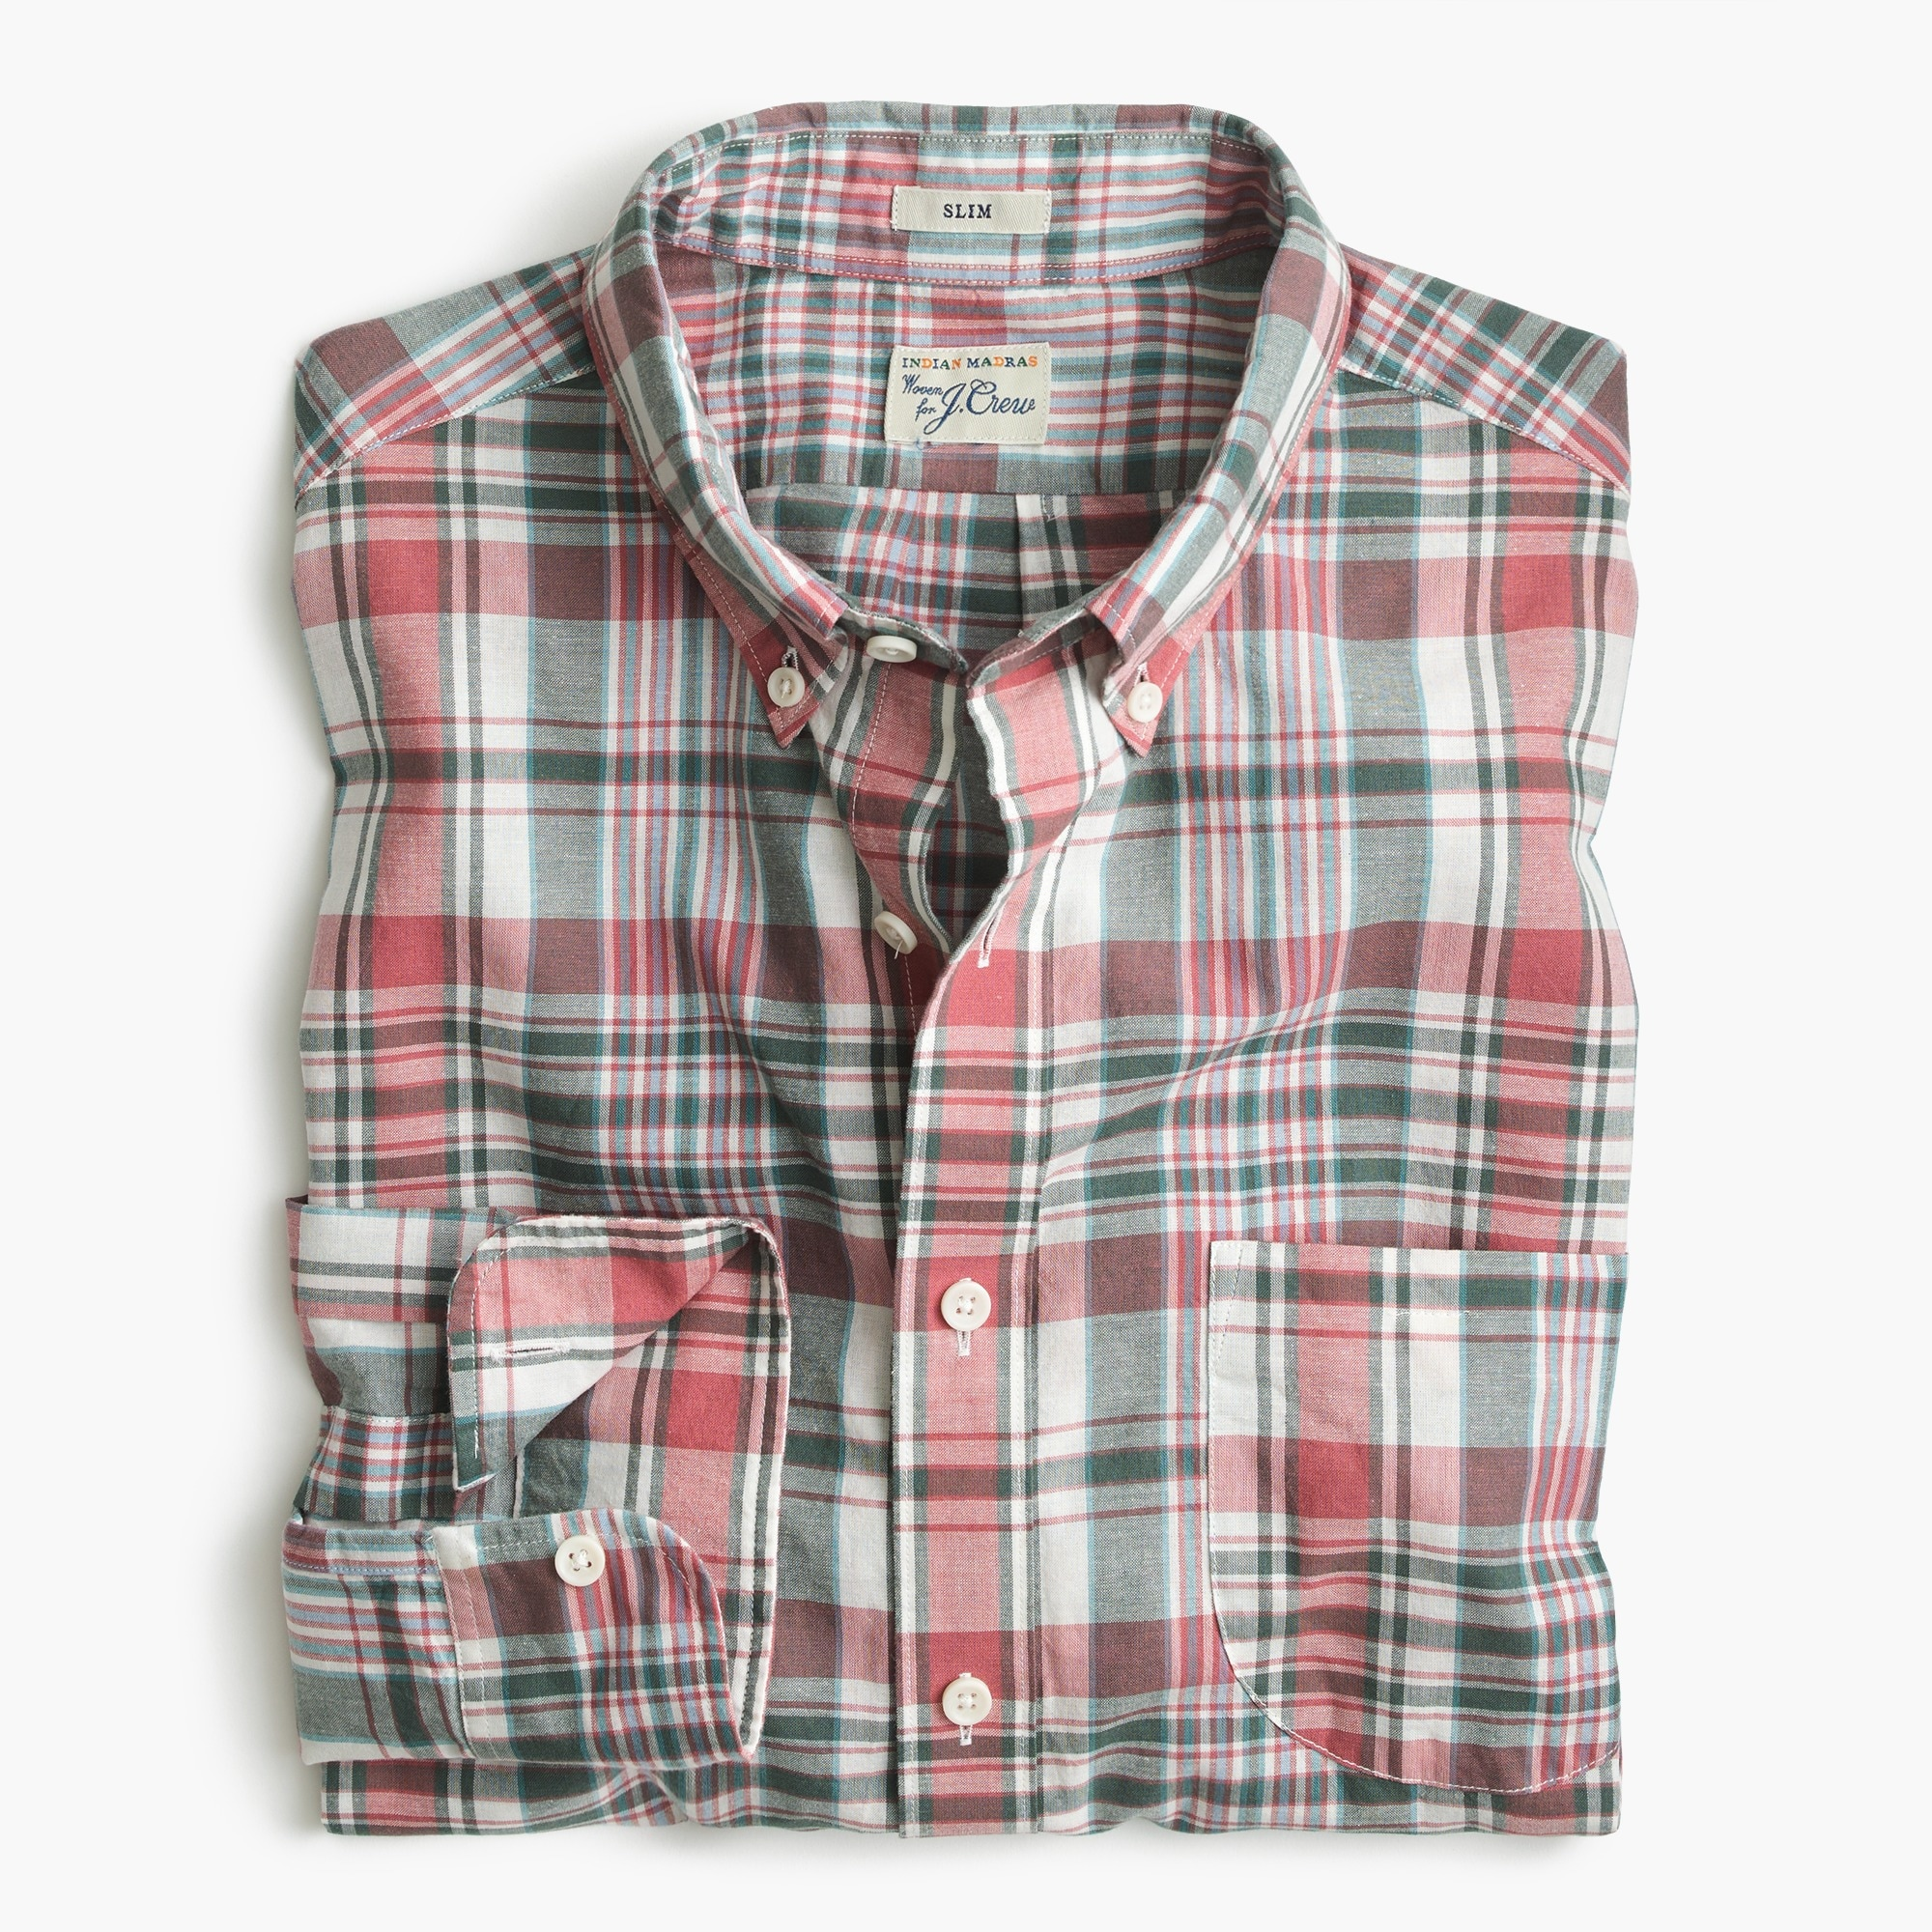 Image 2 for Slim madras shirt in faded plaid